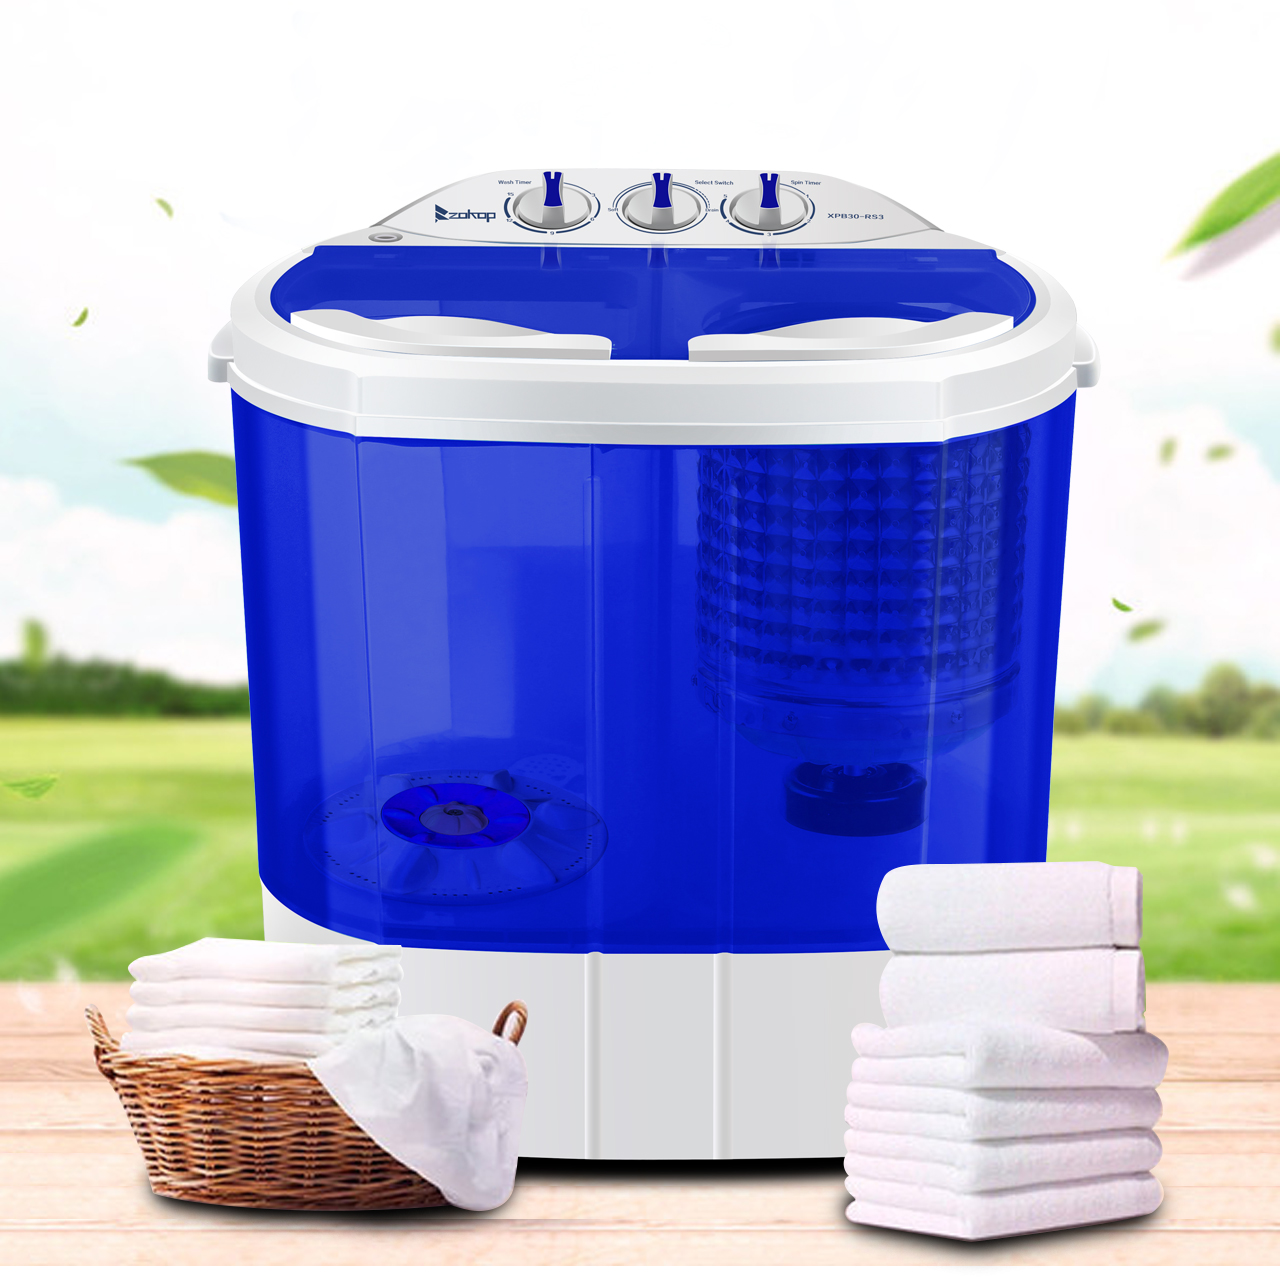 Details About Portable Mini Electric Washing Machine Compact Twin Tub  Washer Spin U0026 Dryer